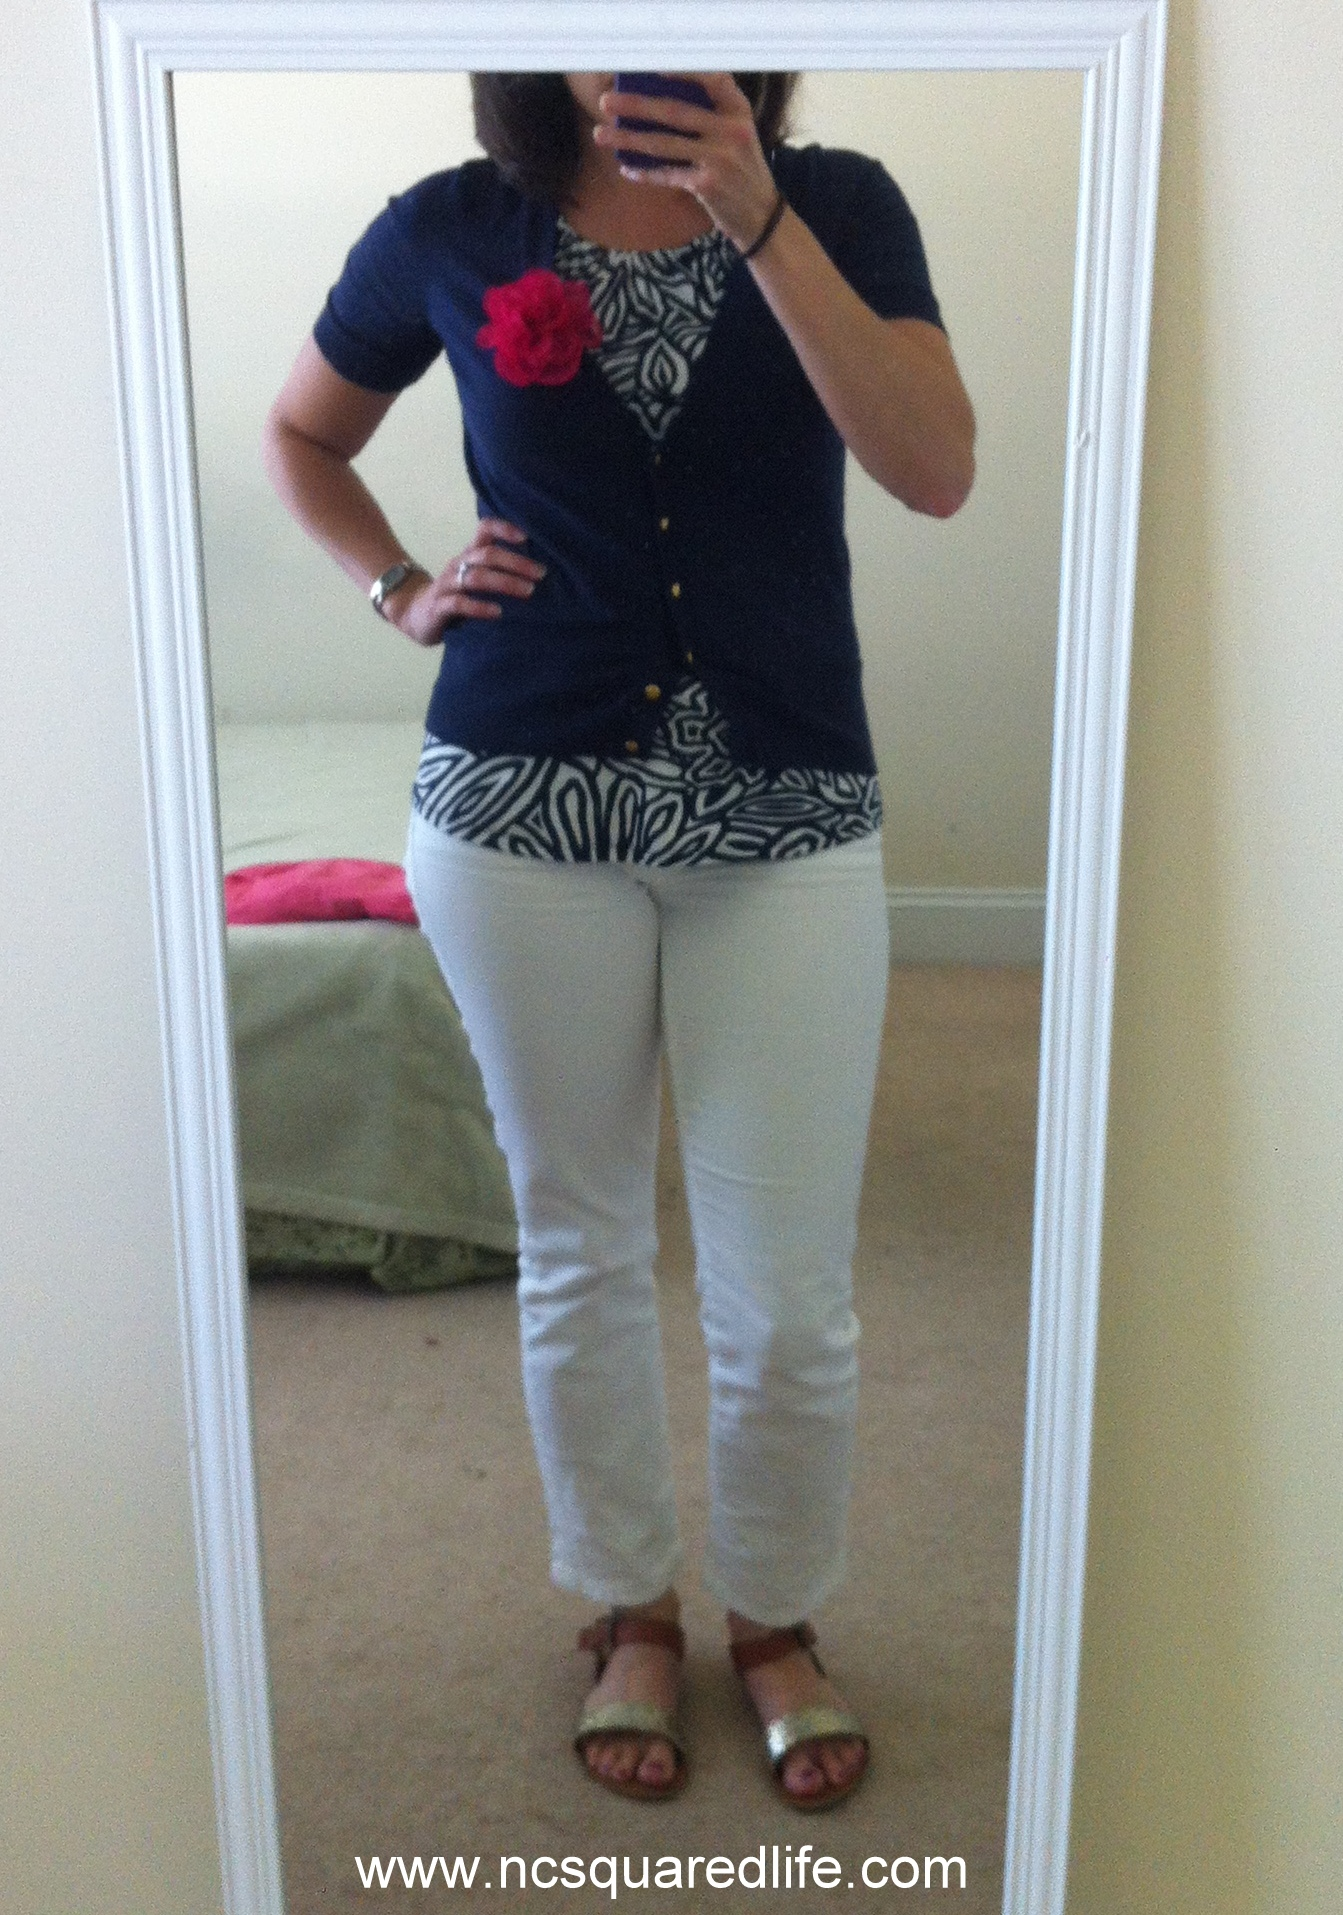 white jeans, patterned navy halter, navy cardigan, pink flower | NCsquared Life